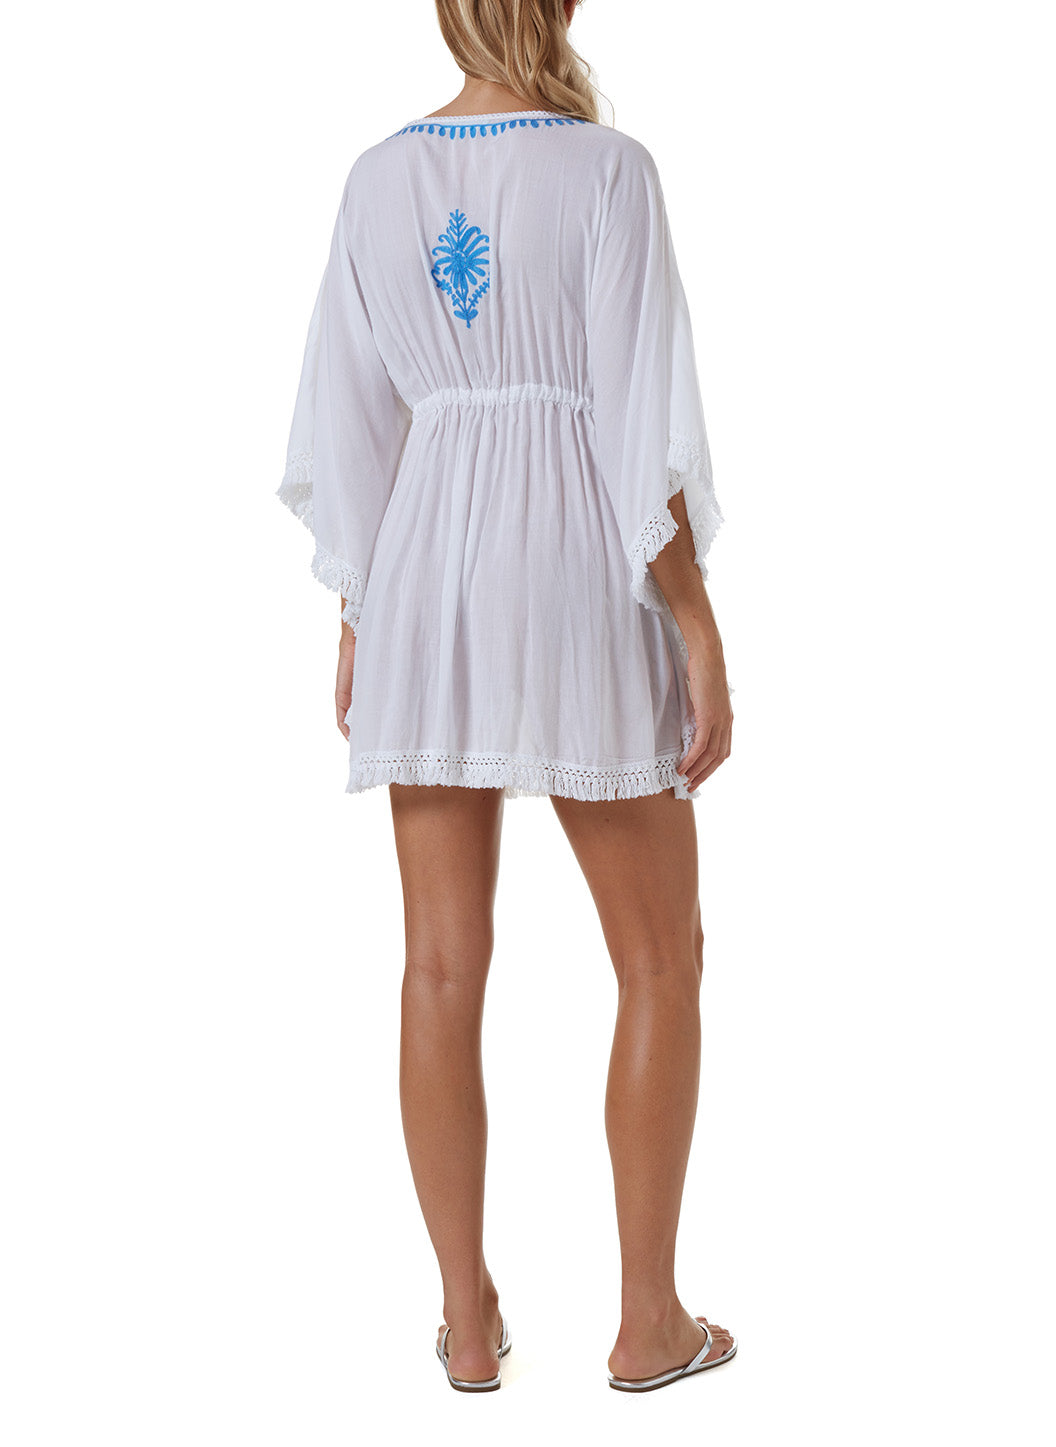 Irene White/Royal Blue Short Kaftan